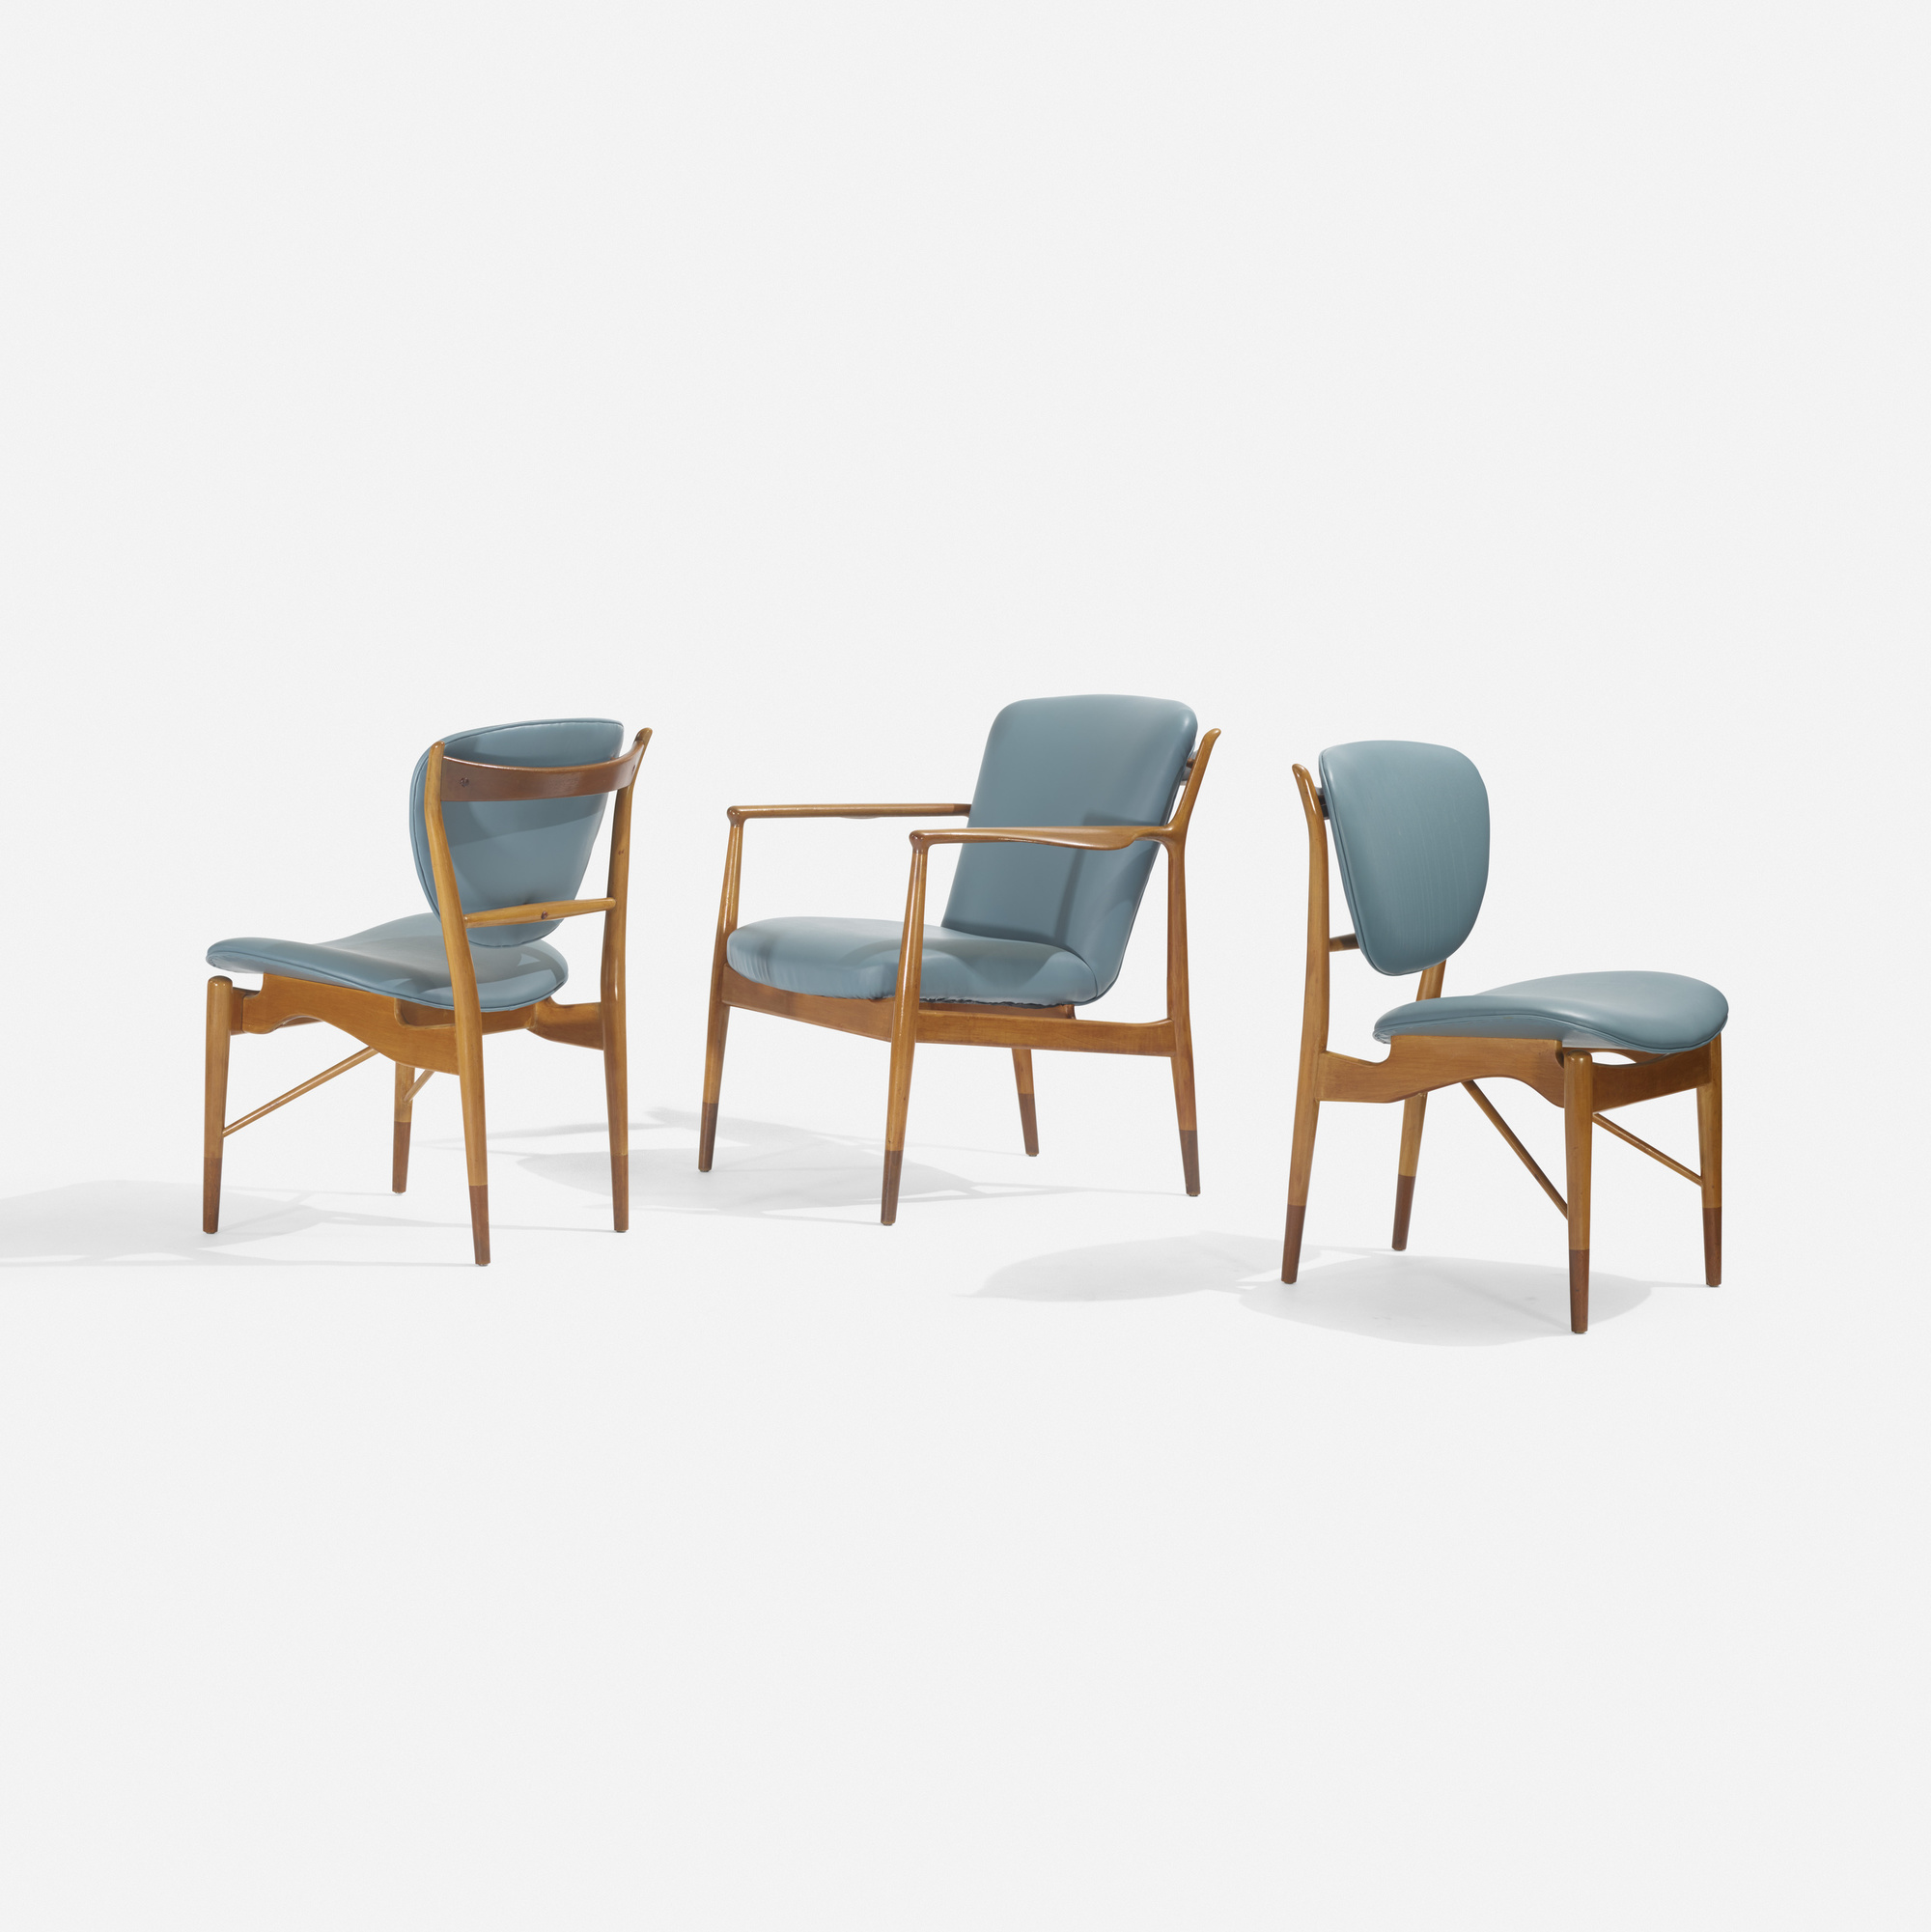 133: Finn Juhl / set of three chairs (1 of 3)